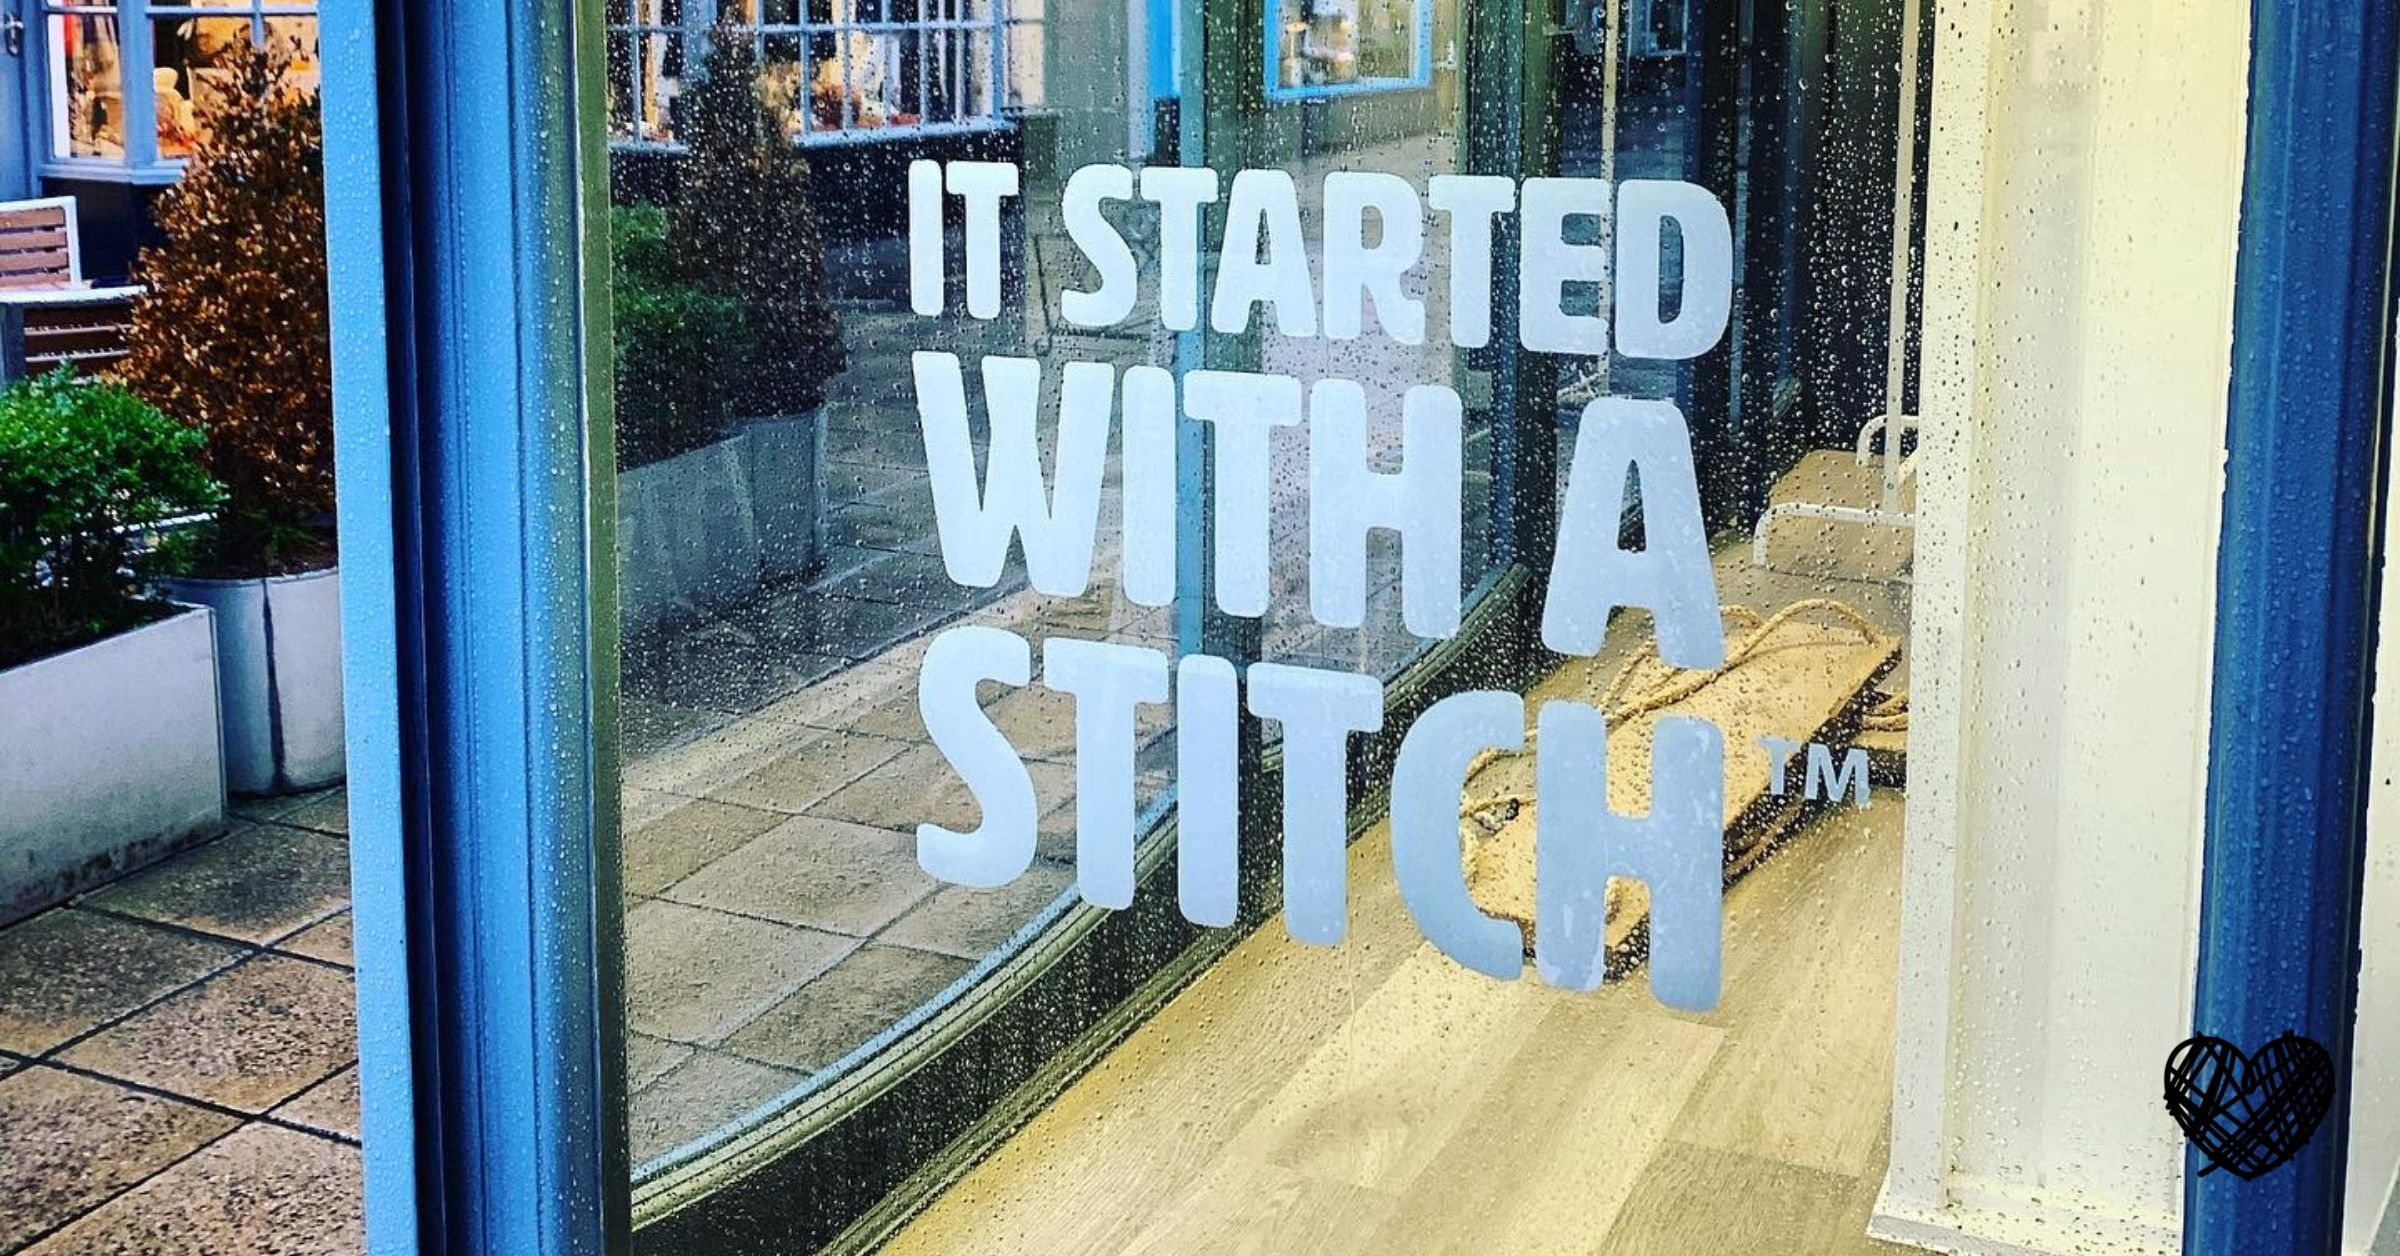 It Started With a Stitch - The Shop